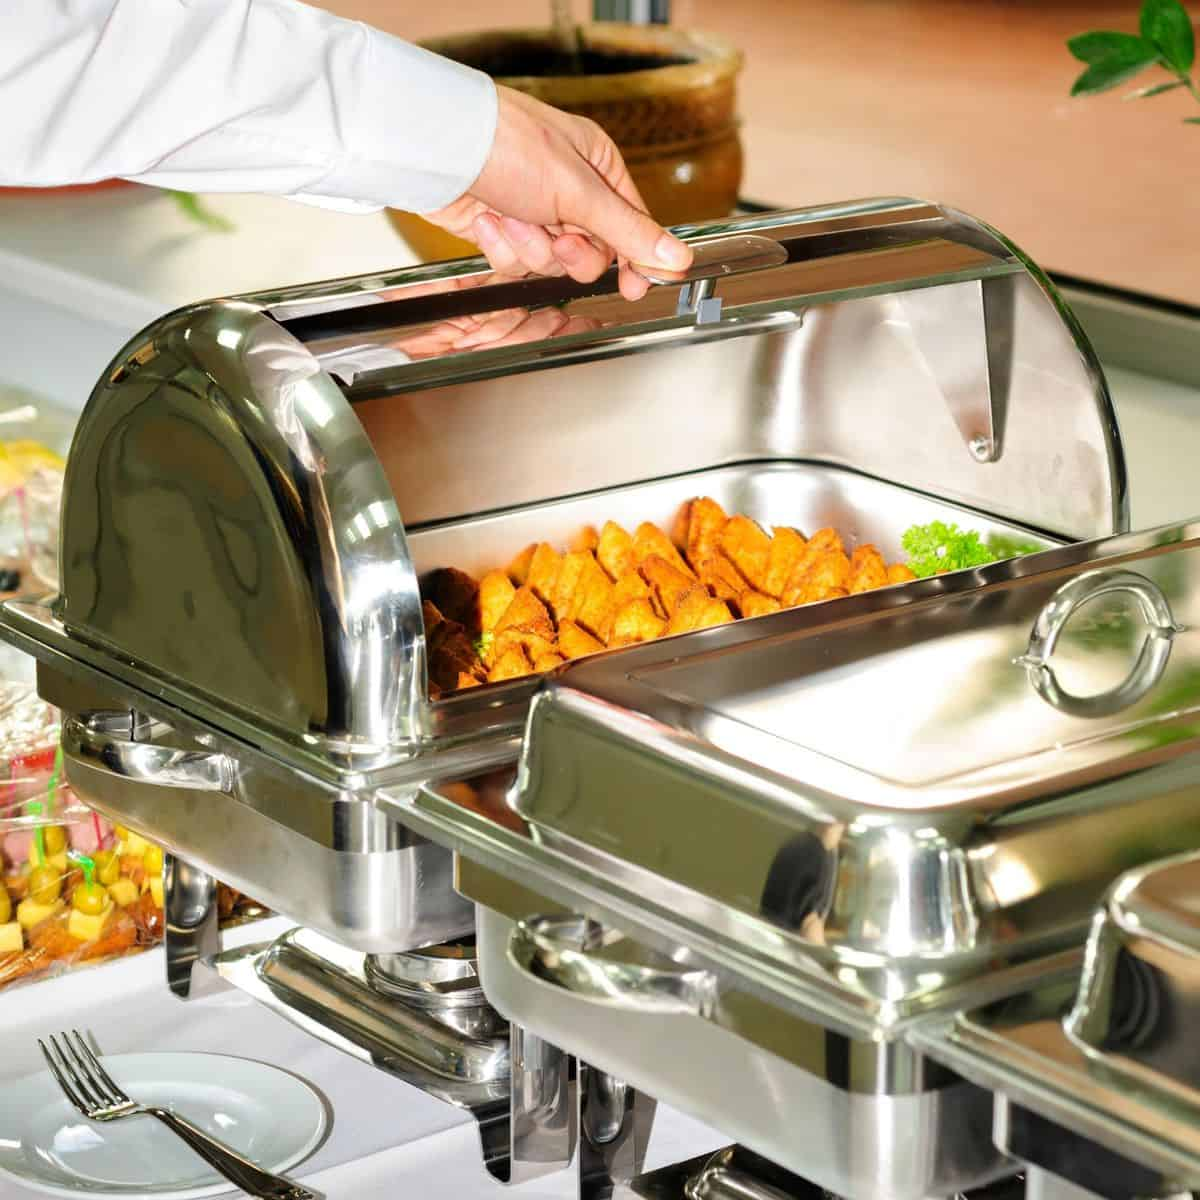 hand opening chafing dish at buffet table.